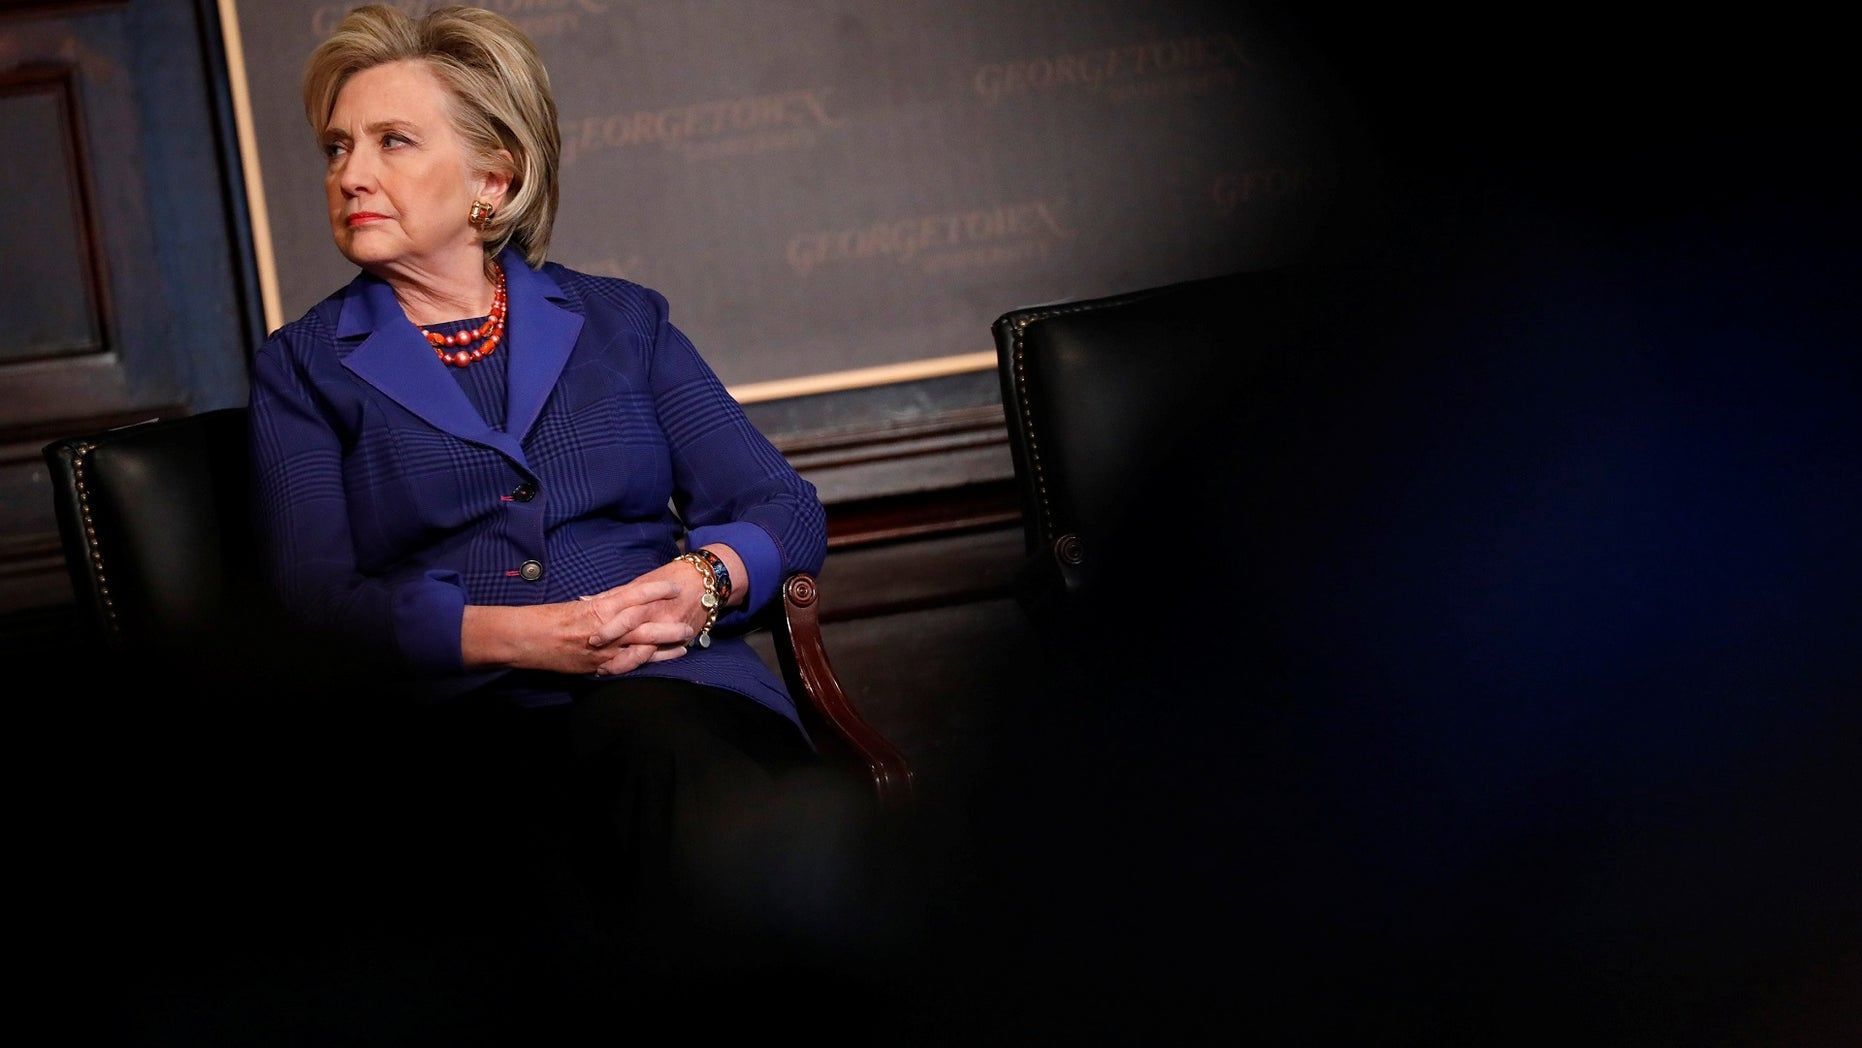 """While promoting her book """"What Happened"""" in New Zealand, Hillary Clinton castigated President Trump for having run a """"reality TV"""" campaign. She also decried sexism in the U.S. that she said contributed to her election loss."""